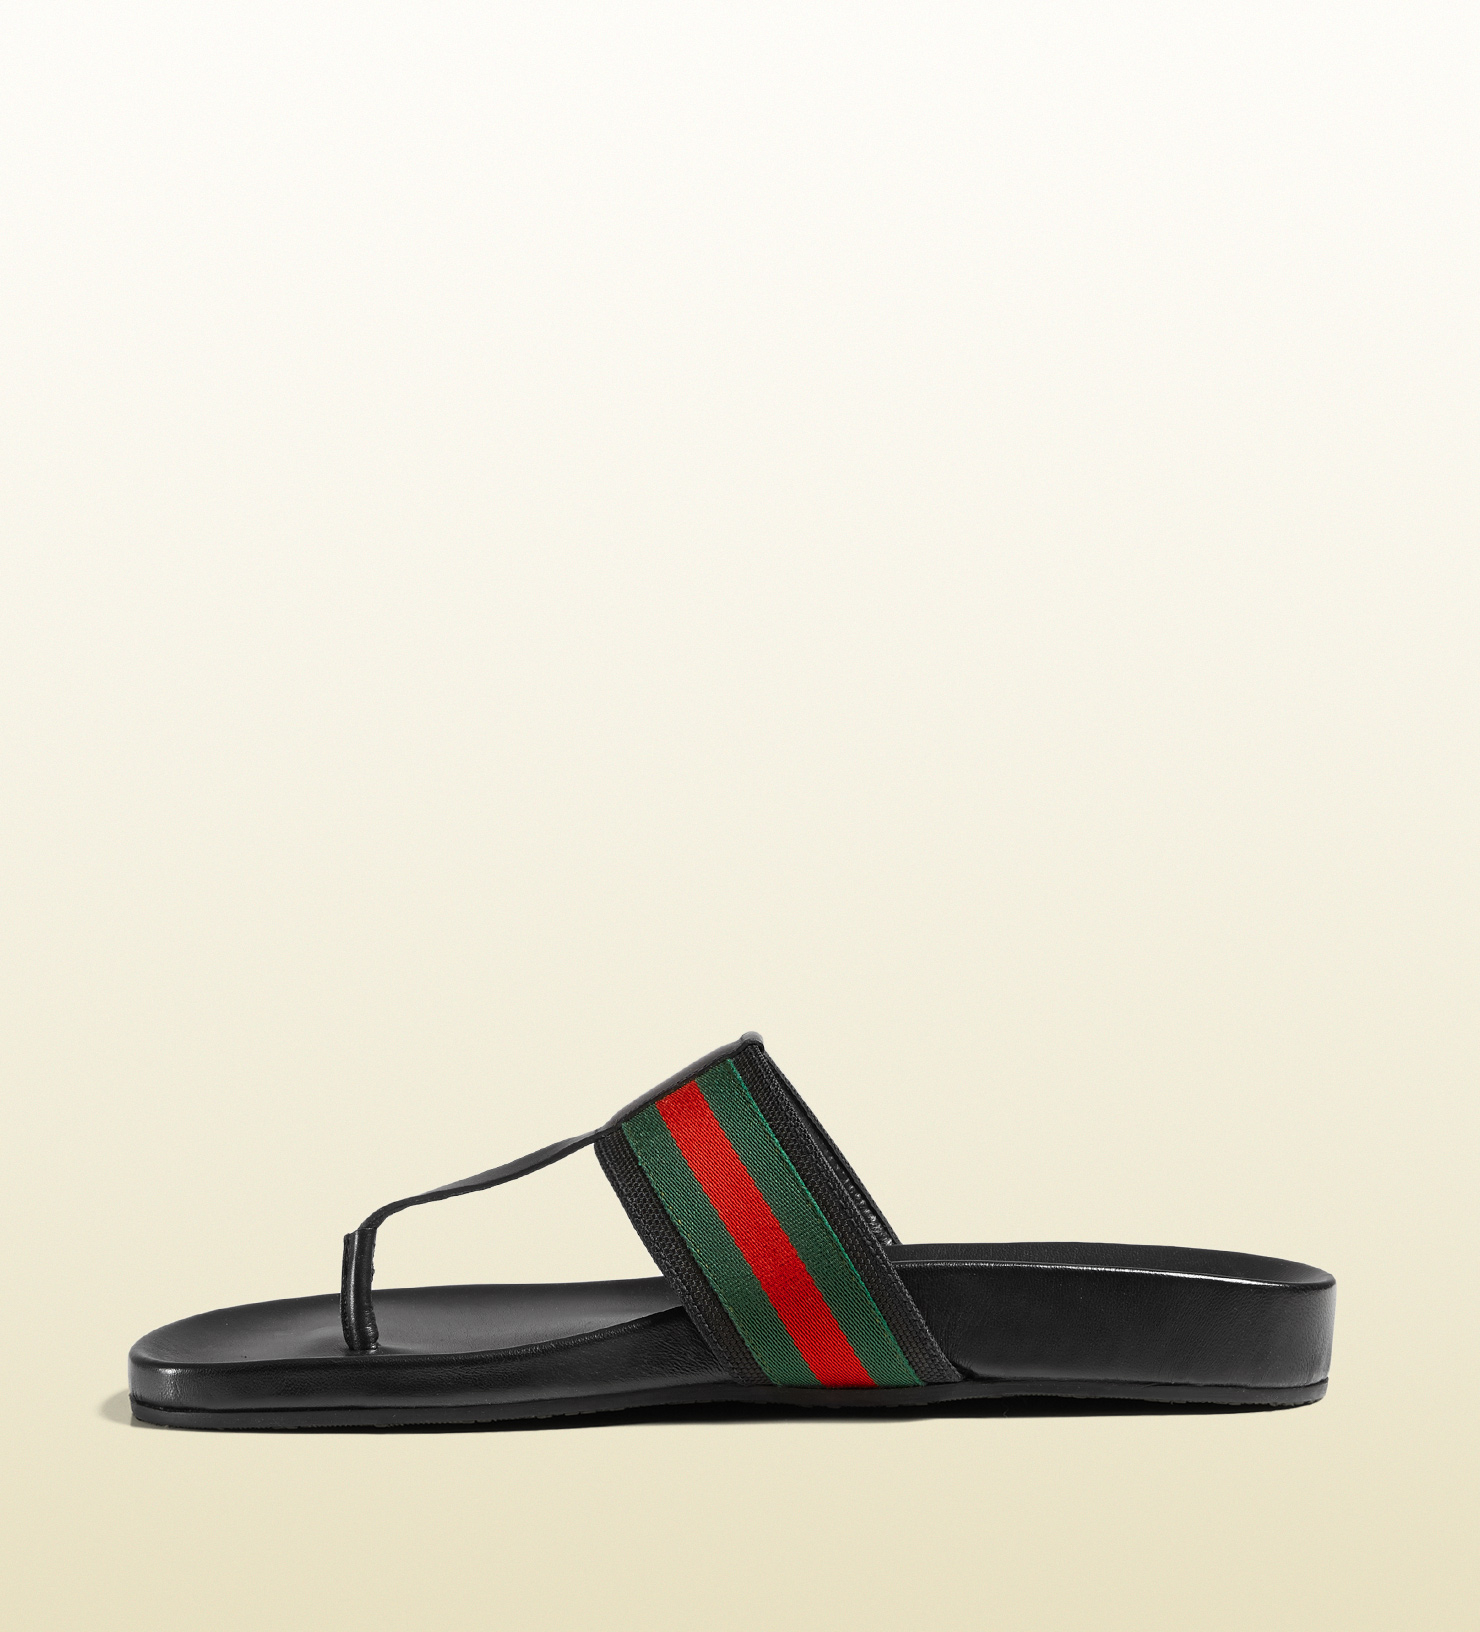 d561908f6a7ed2 Lyst - Gucci Web Strap Sandal in Black for Men